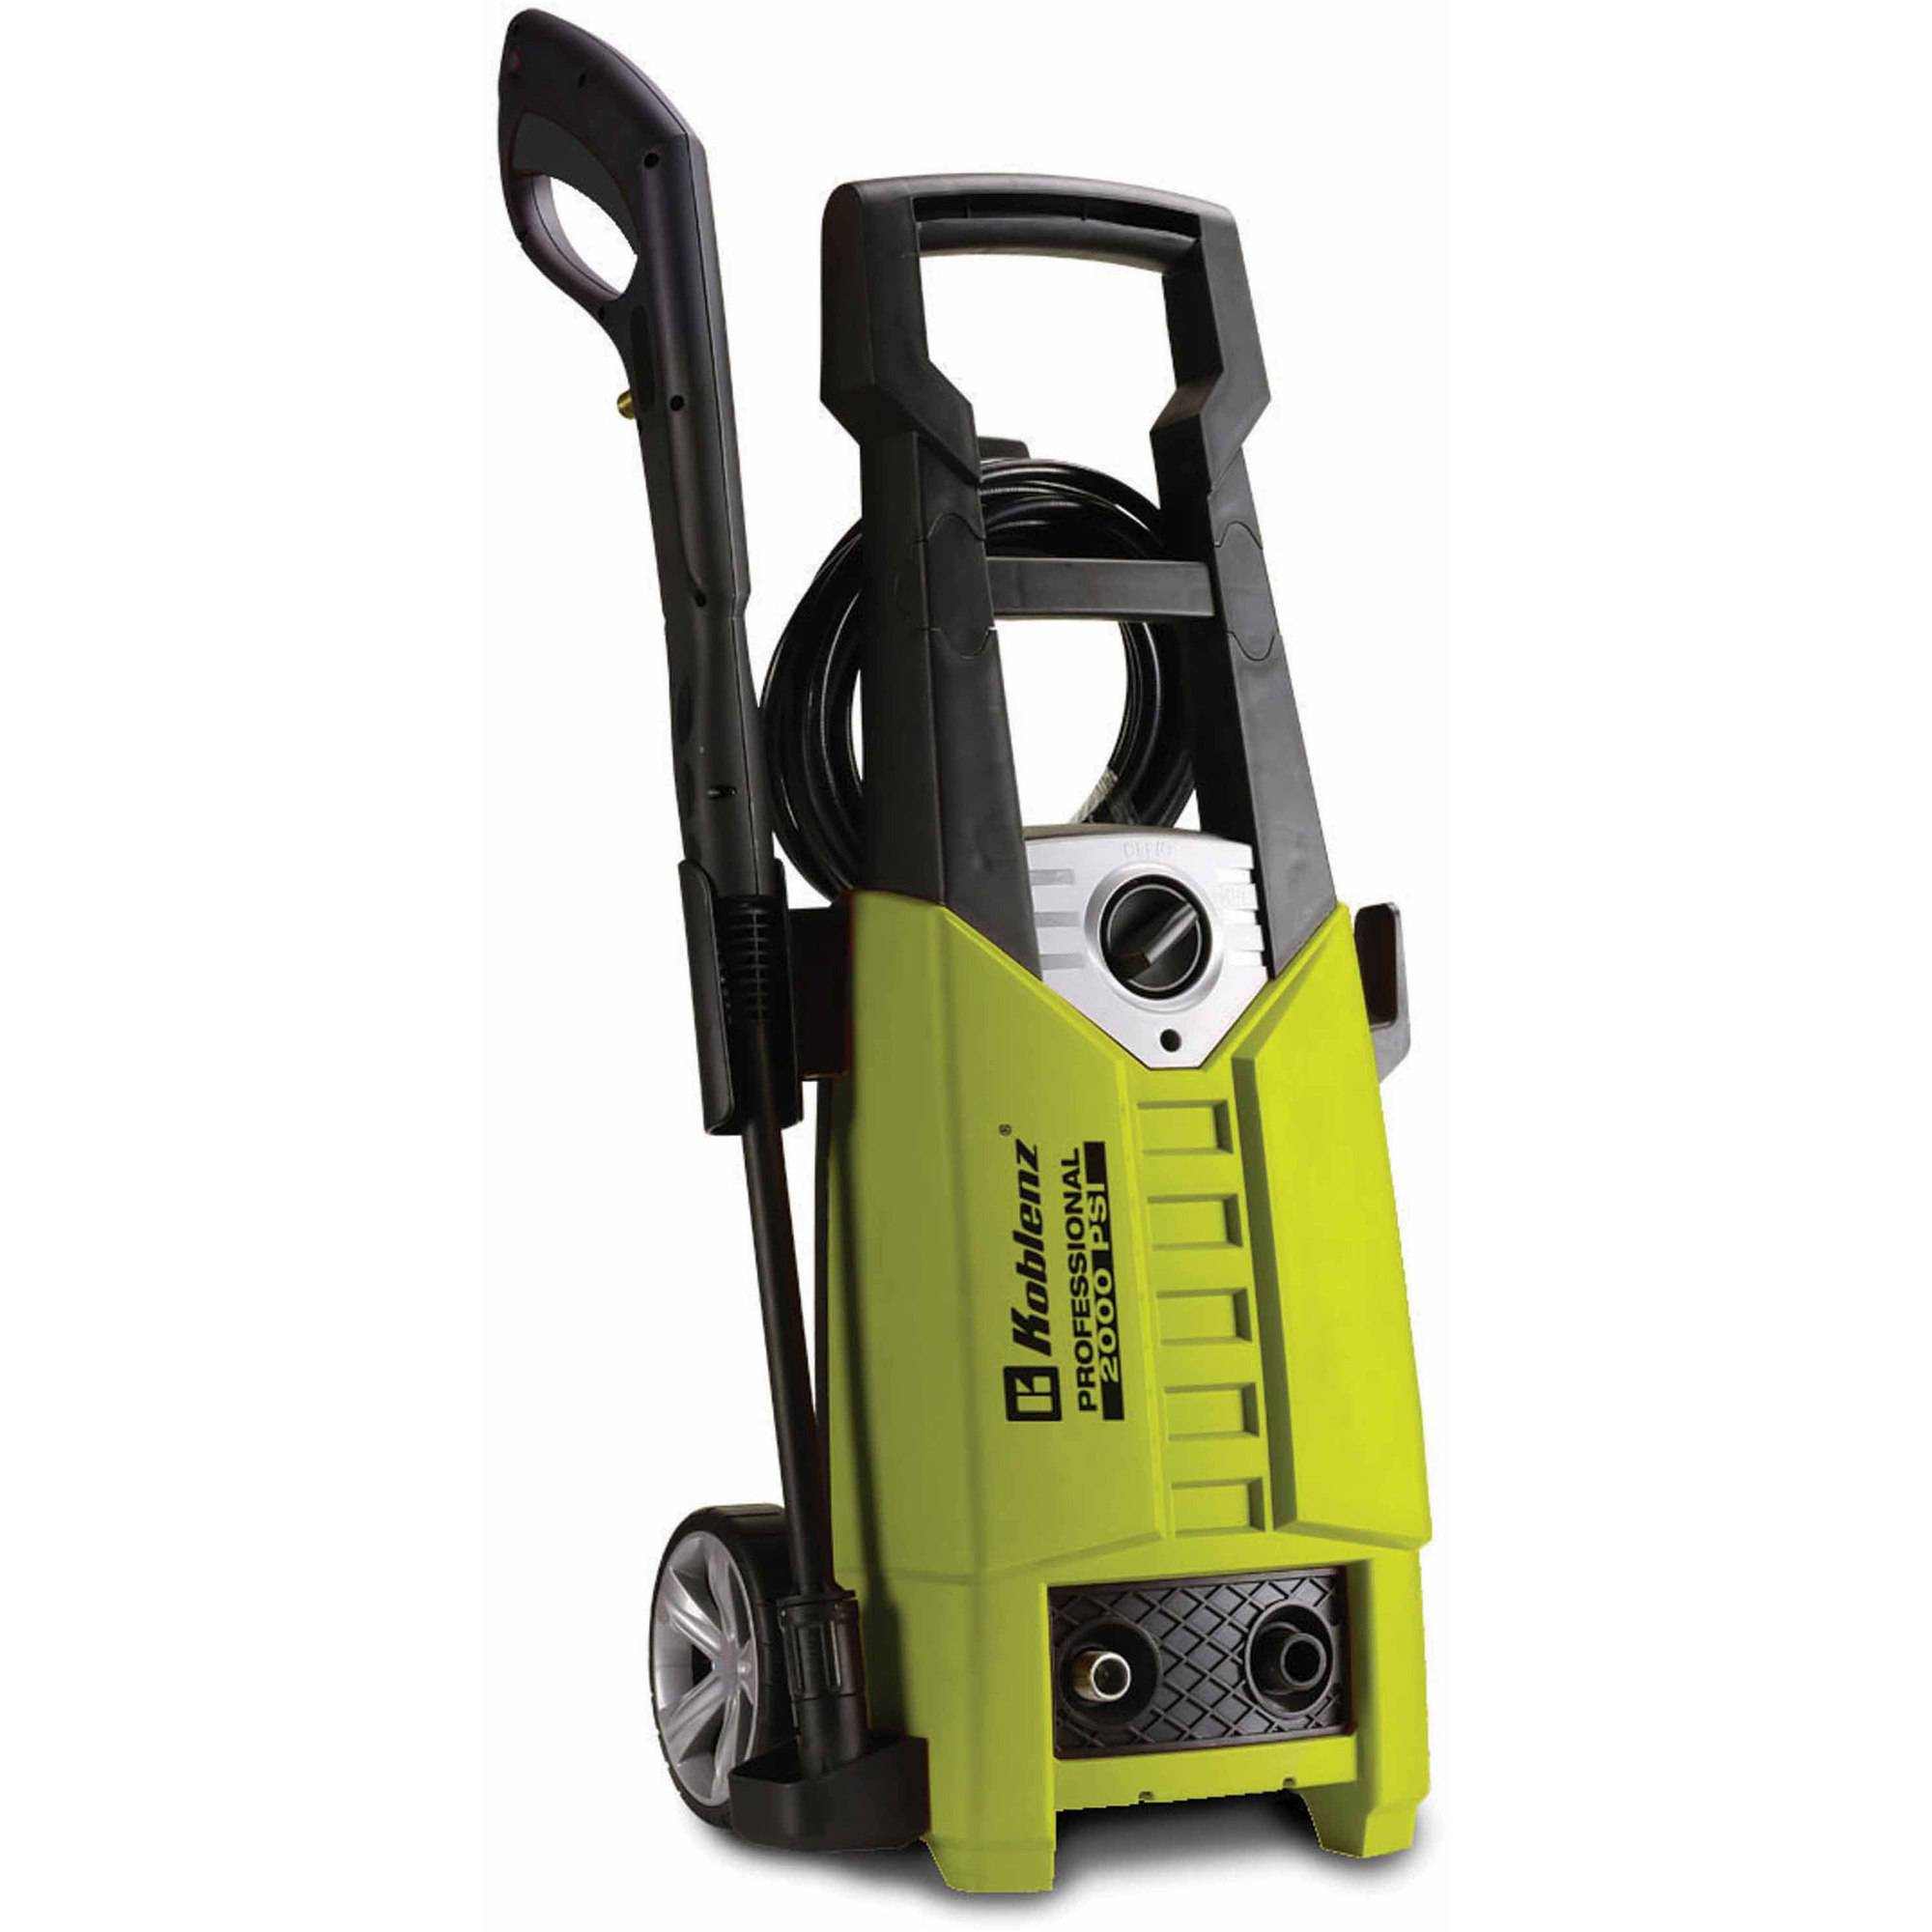 Koblenz 2000 PSI Pressure Washer, Yellow